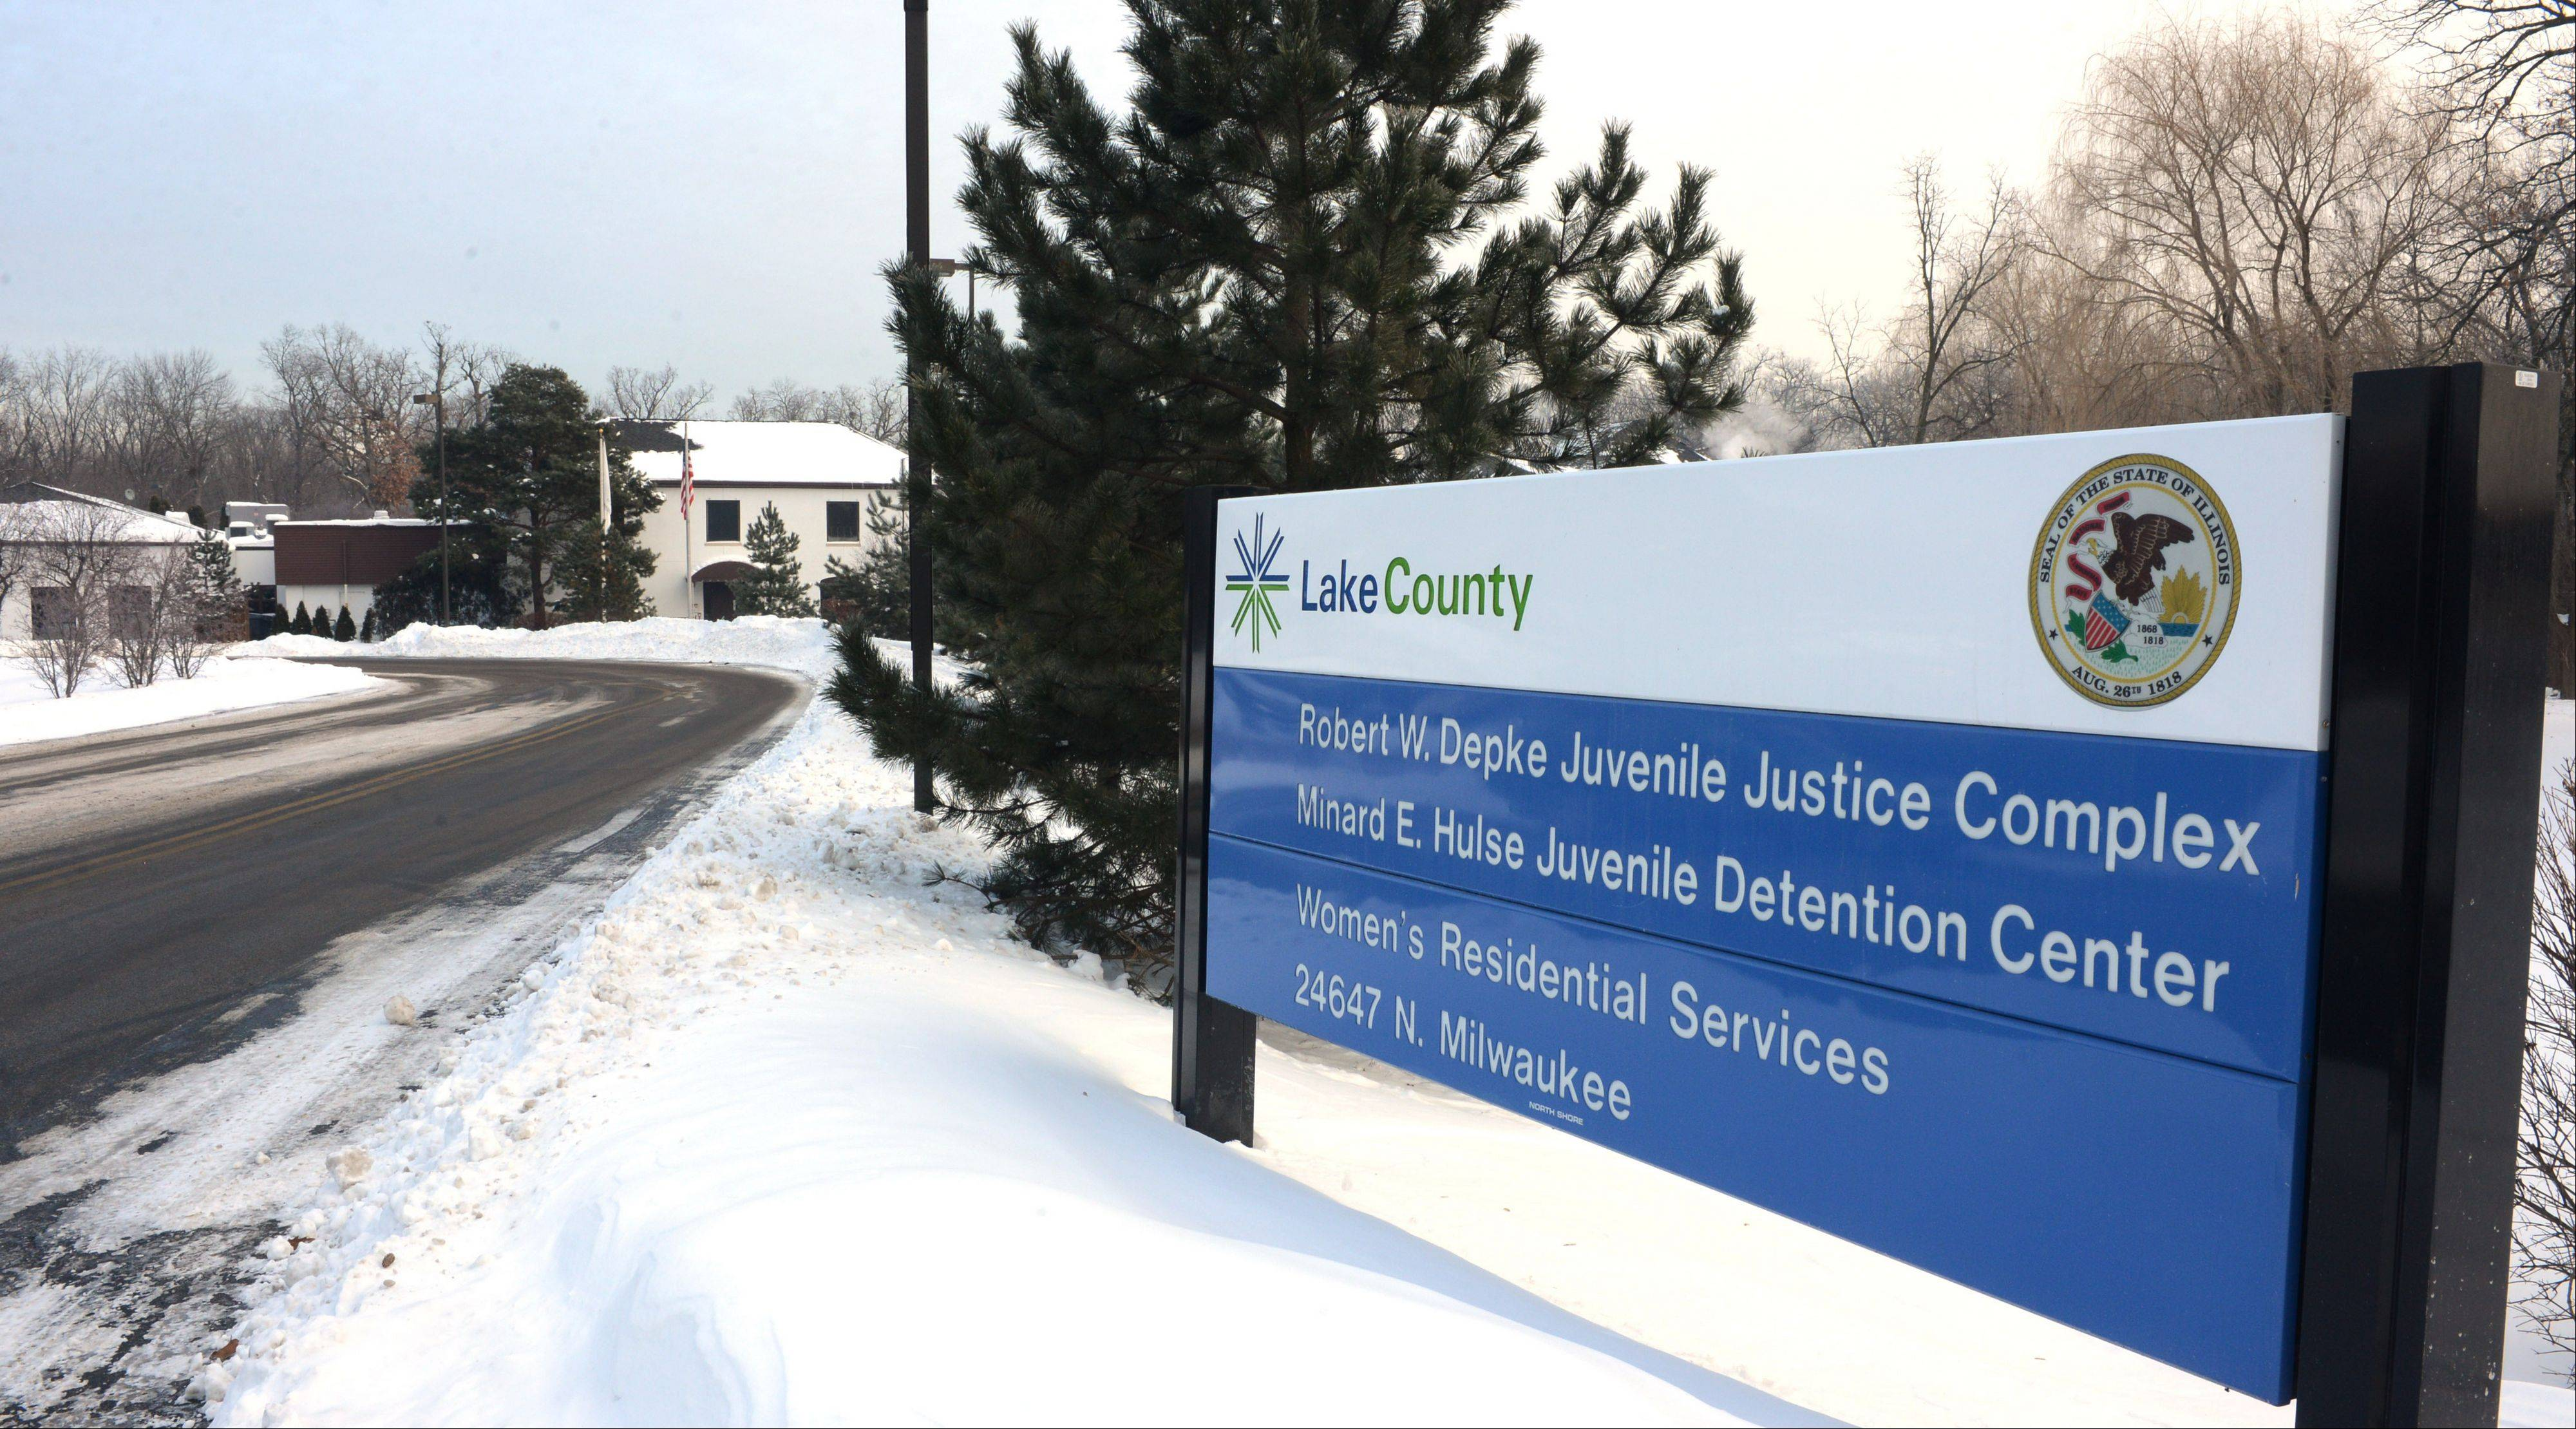 Lake County officials are moving forward with a long-planned expansion of the Robert W. Depke Juvenile Justice Complex near Vernon Hills.